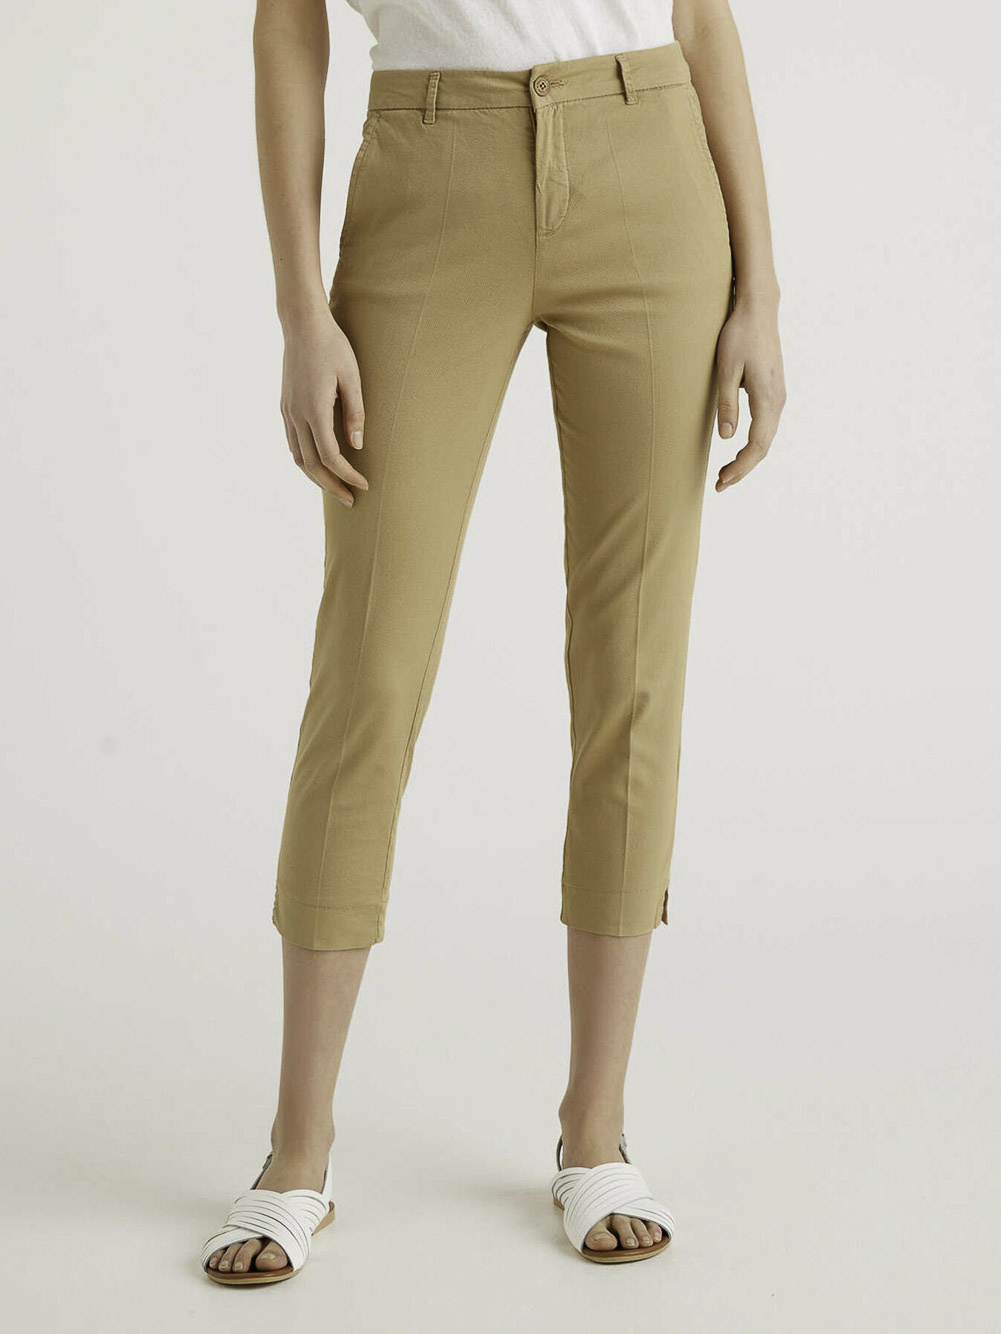 BENETTON Παντελόνι chinos 4CDR558R5 20P193